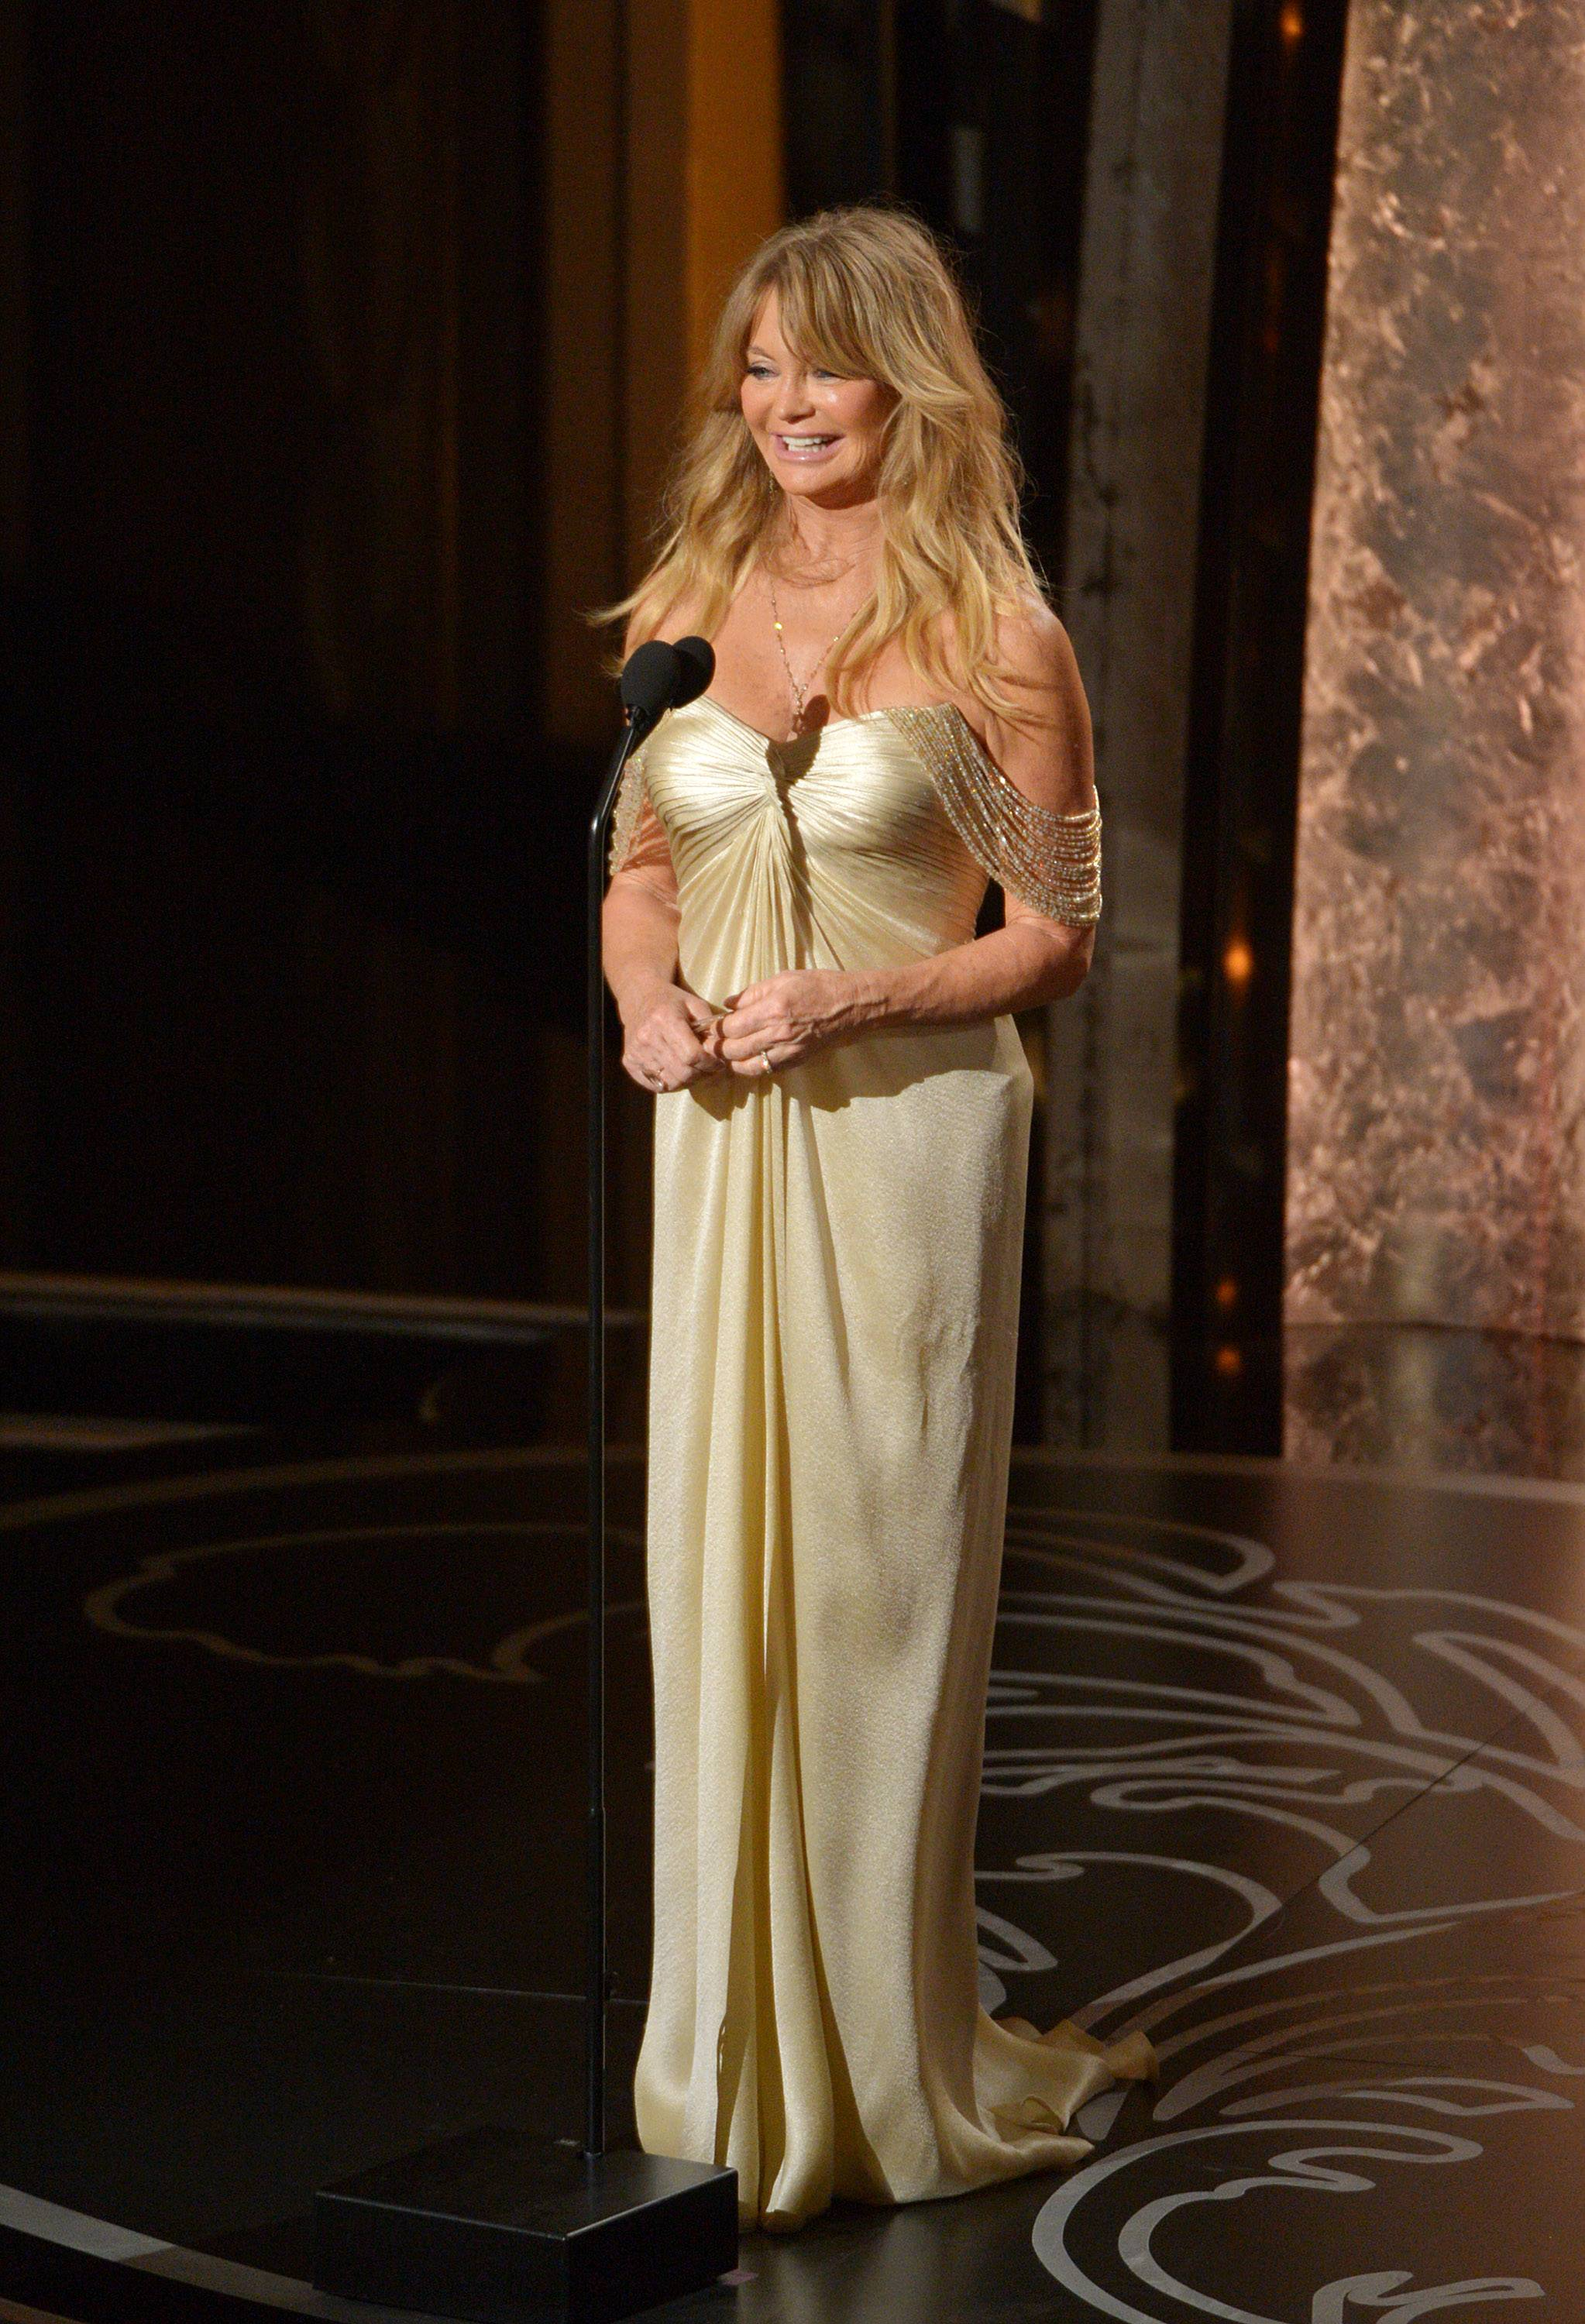 Presenter Goldie Hawn speaks during the Oscars at the Dolby Theatre on Sunday